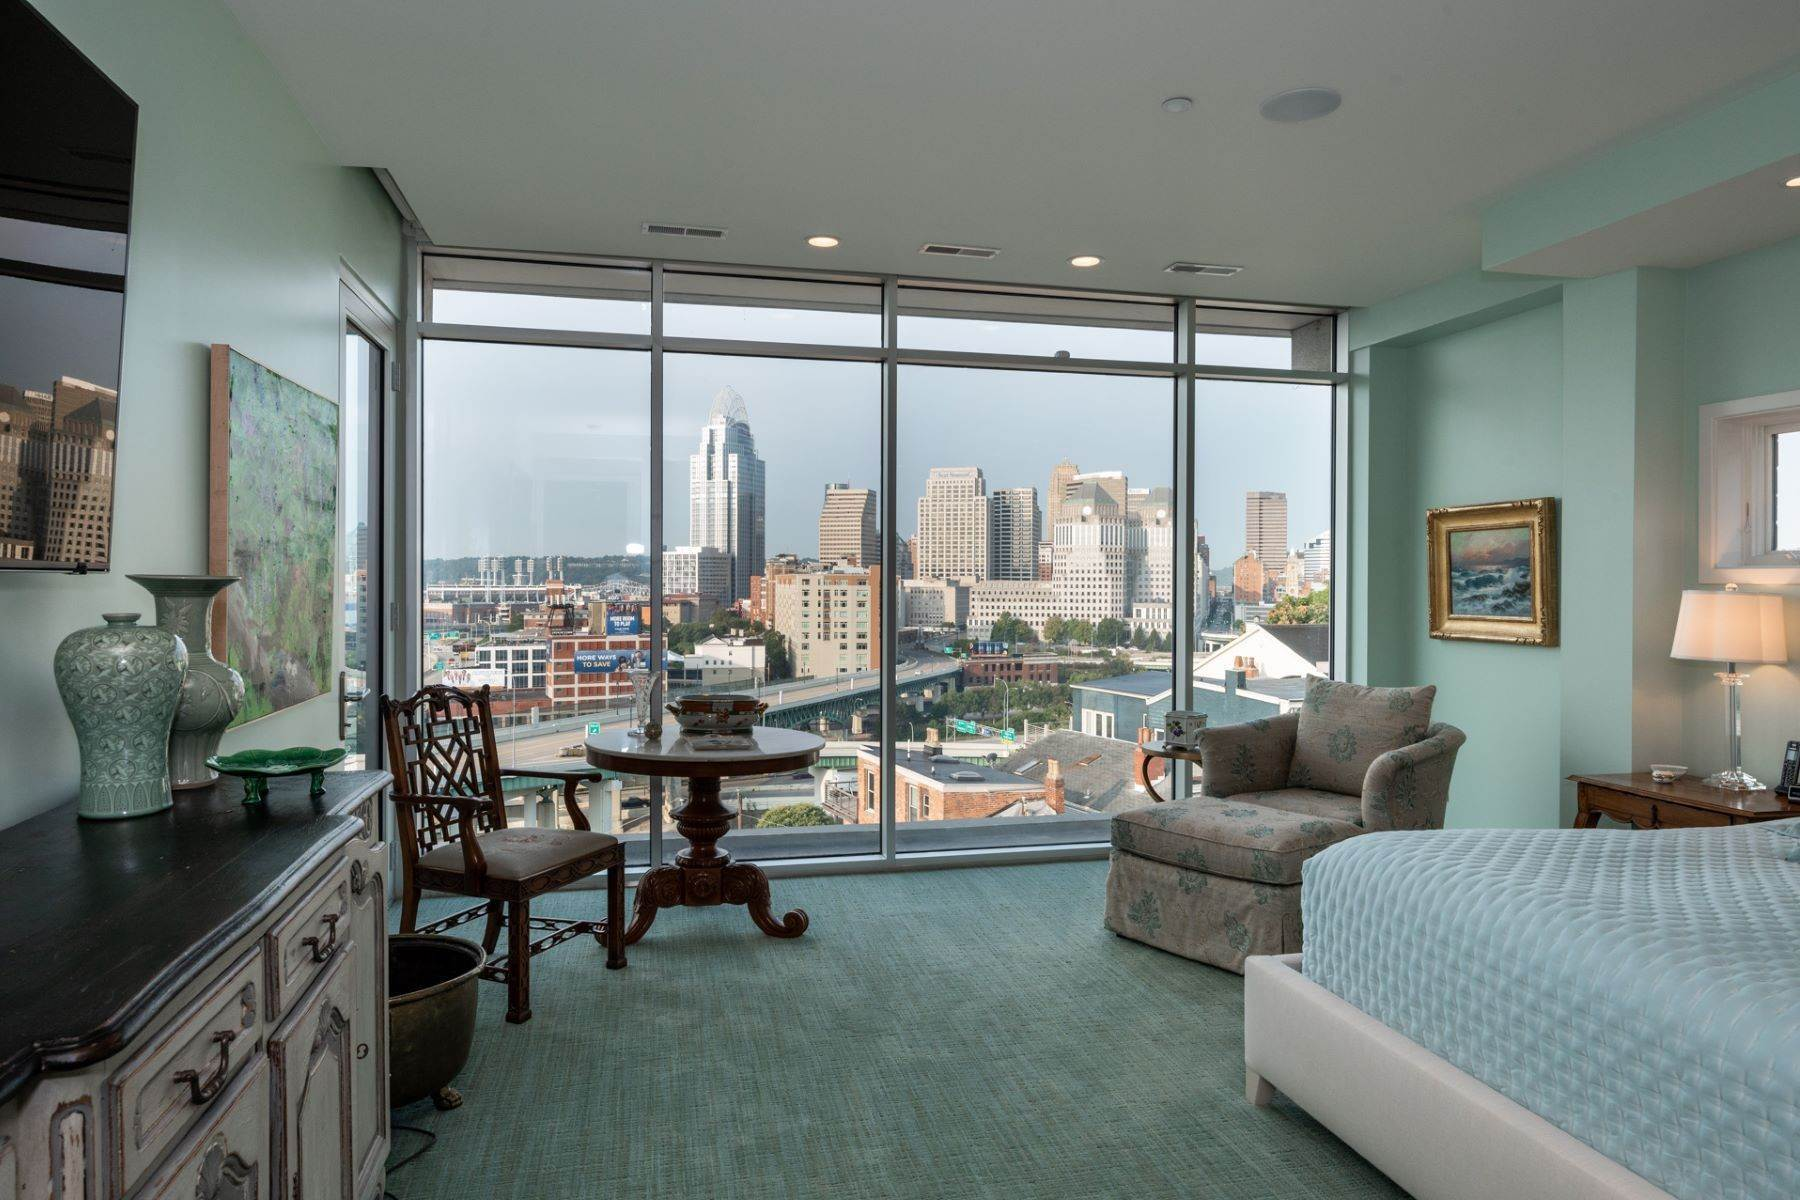 16. Condominiums for Sale at 309 Oregon Street, Cincinnati, OH 45202 309 Oregon Street, Unit #601 Cincinnati, Ohio 45202 United States